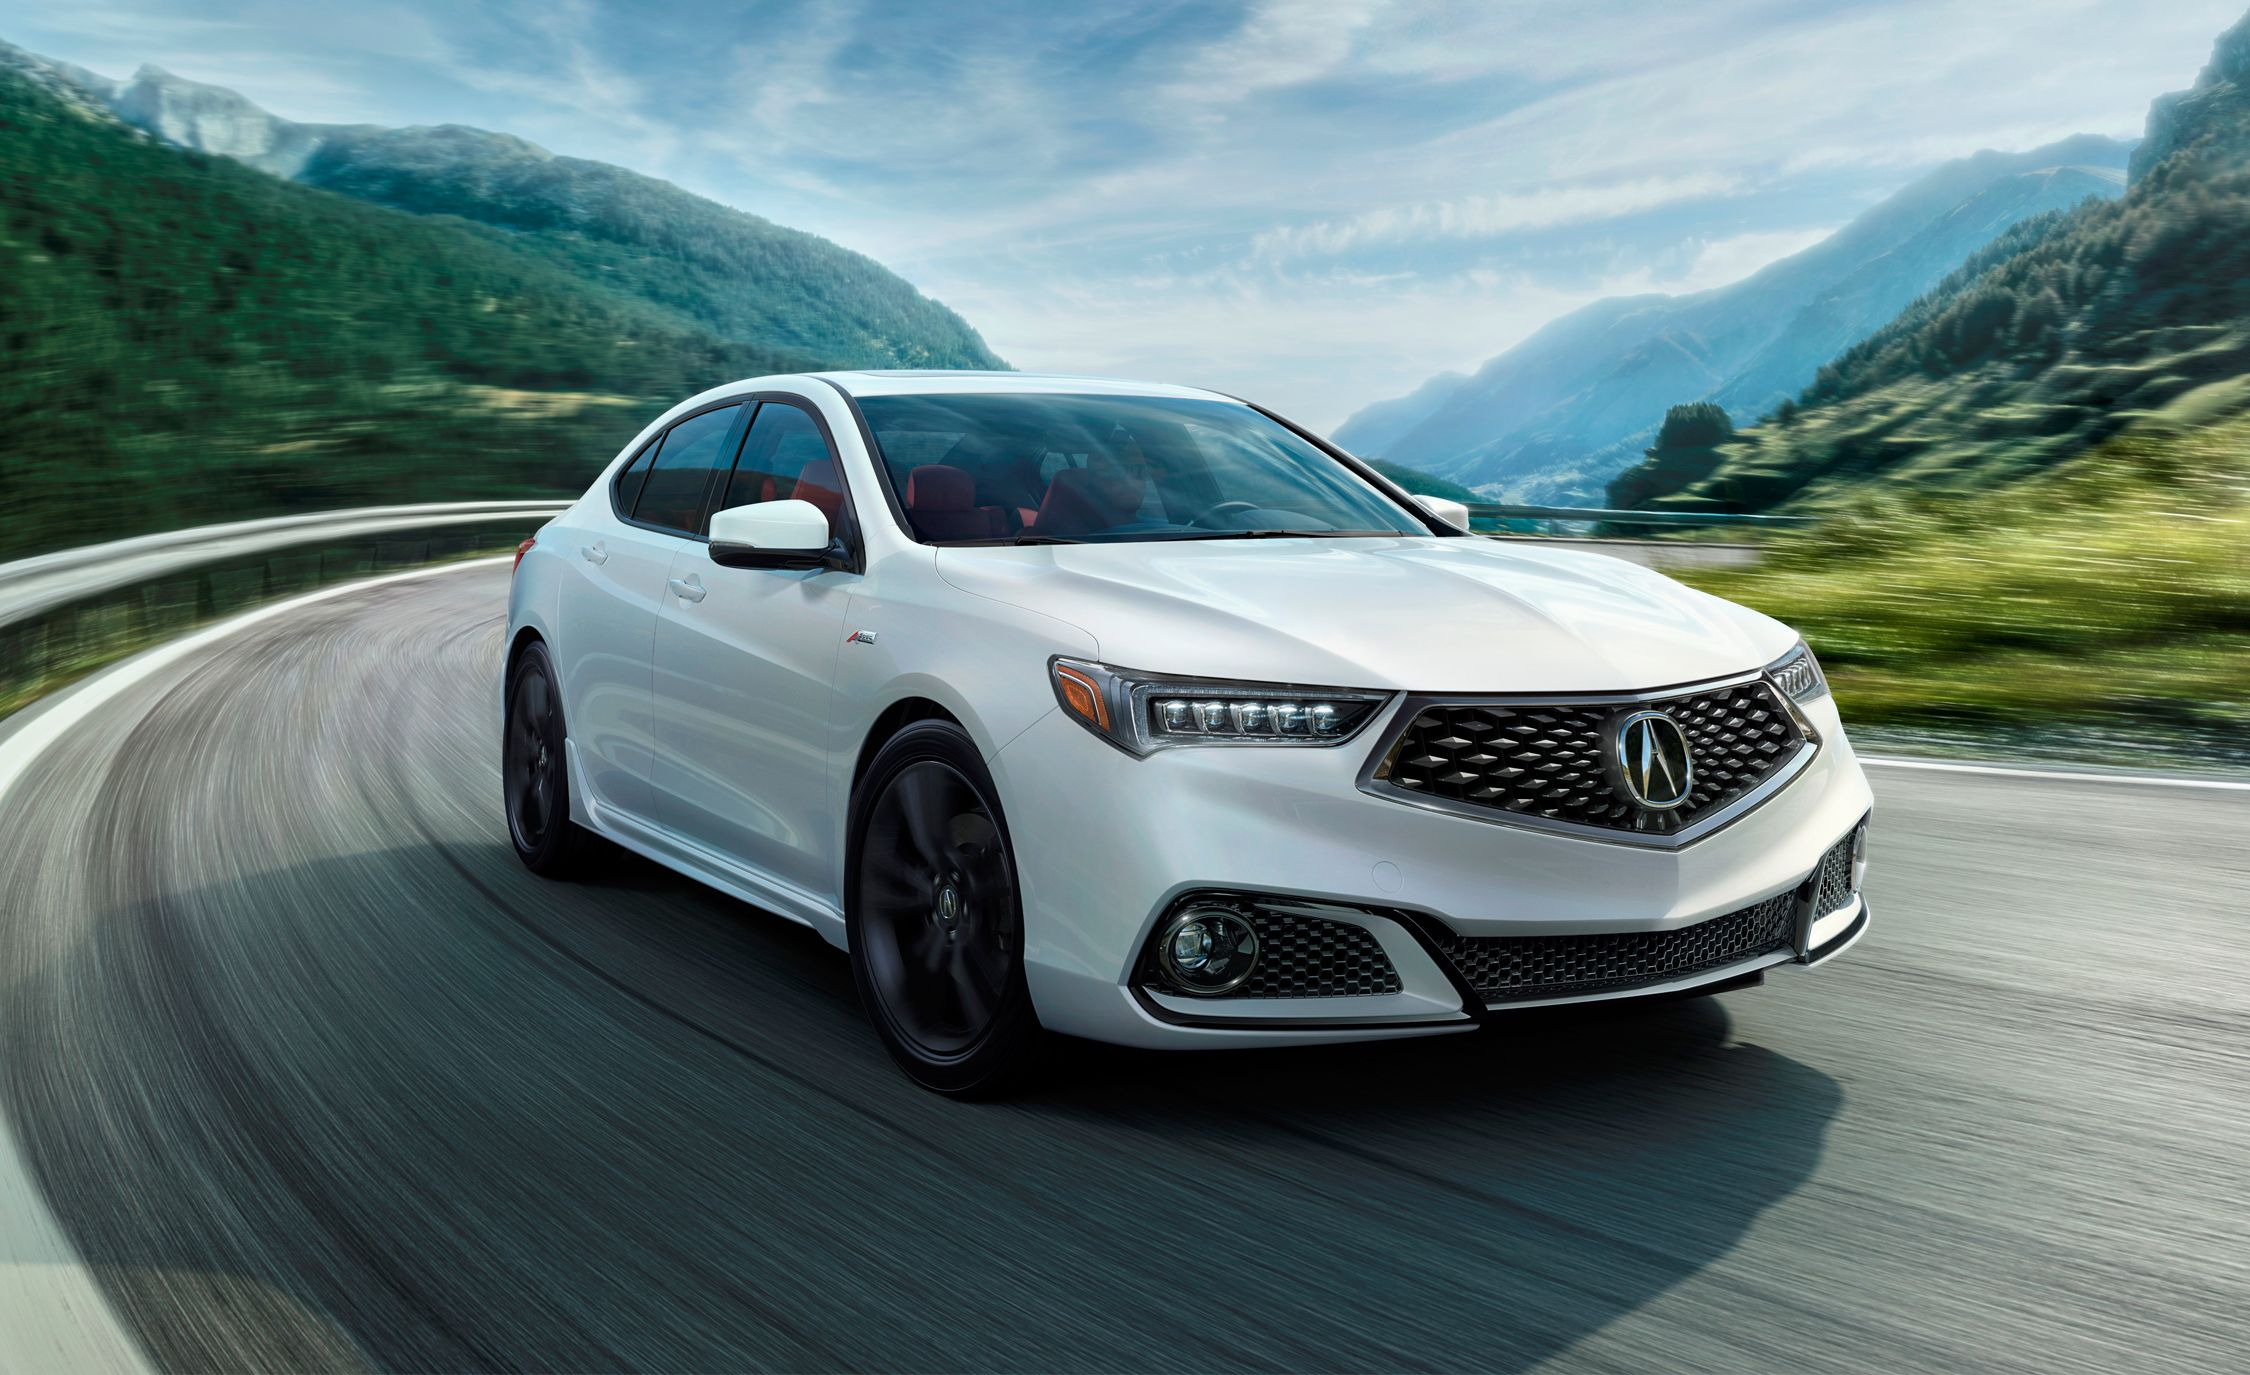 Mdx For Sale >> 2018 Acura TLX Photos and Info | News | Car and Driver